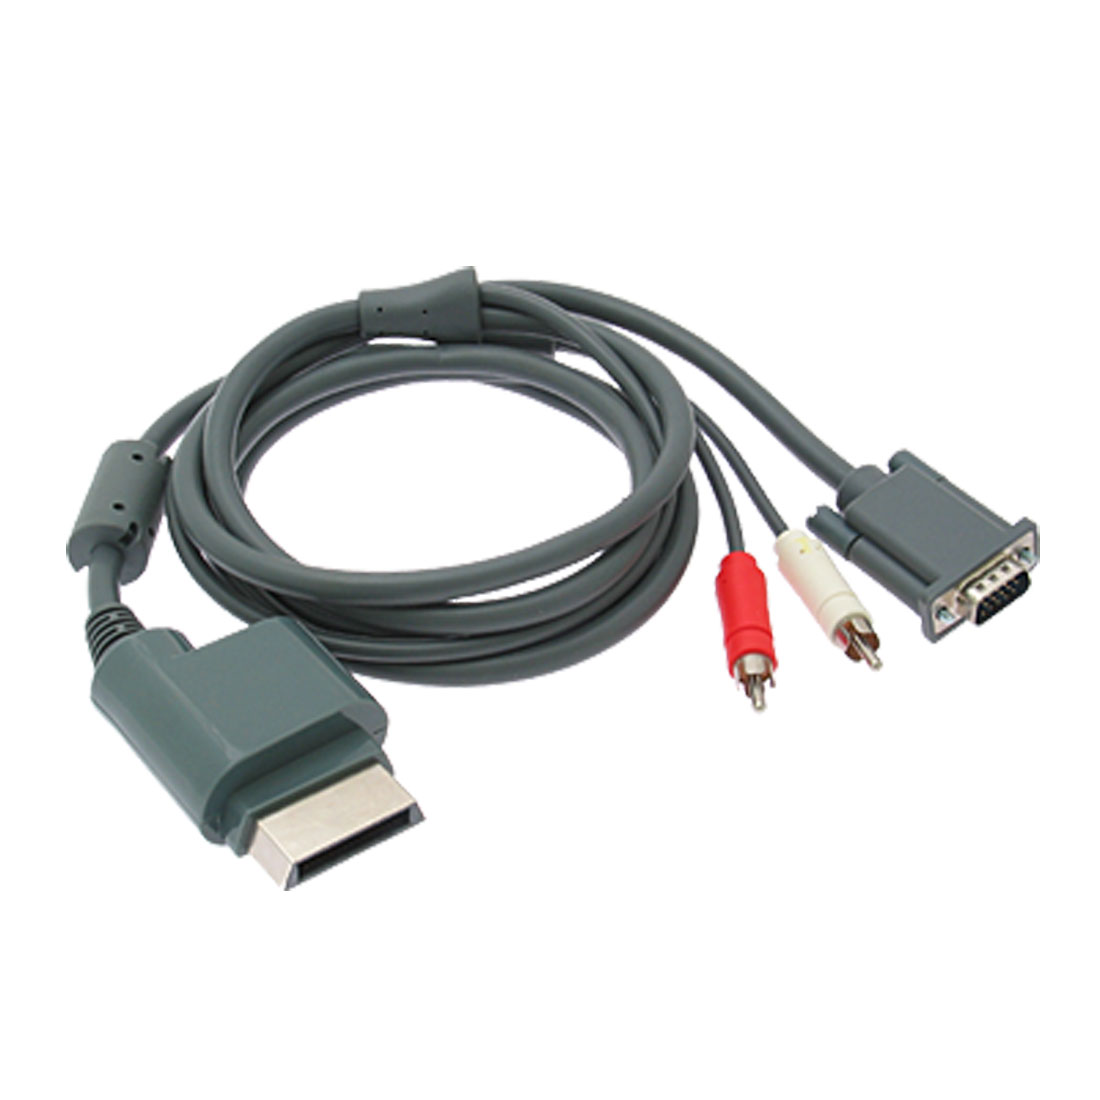 VGA HDAV Audio Video Cable HD AV for Xbox 360 Console Oewan